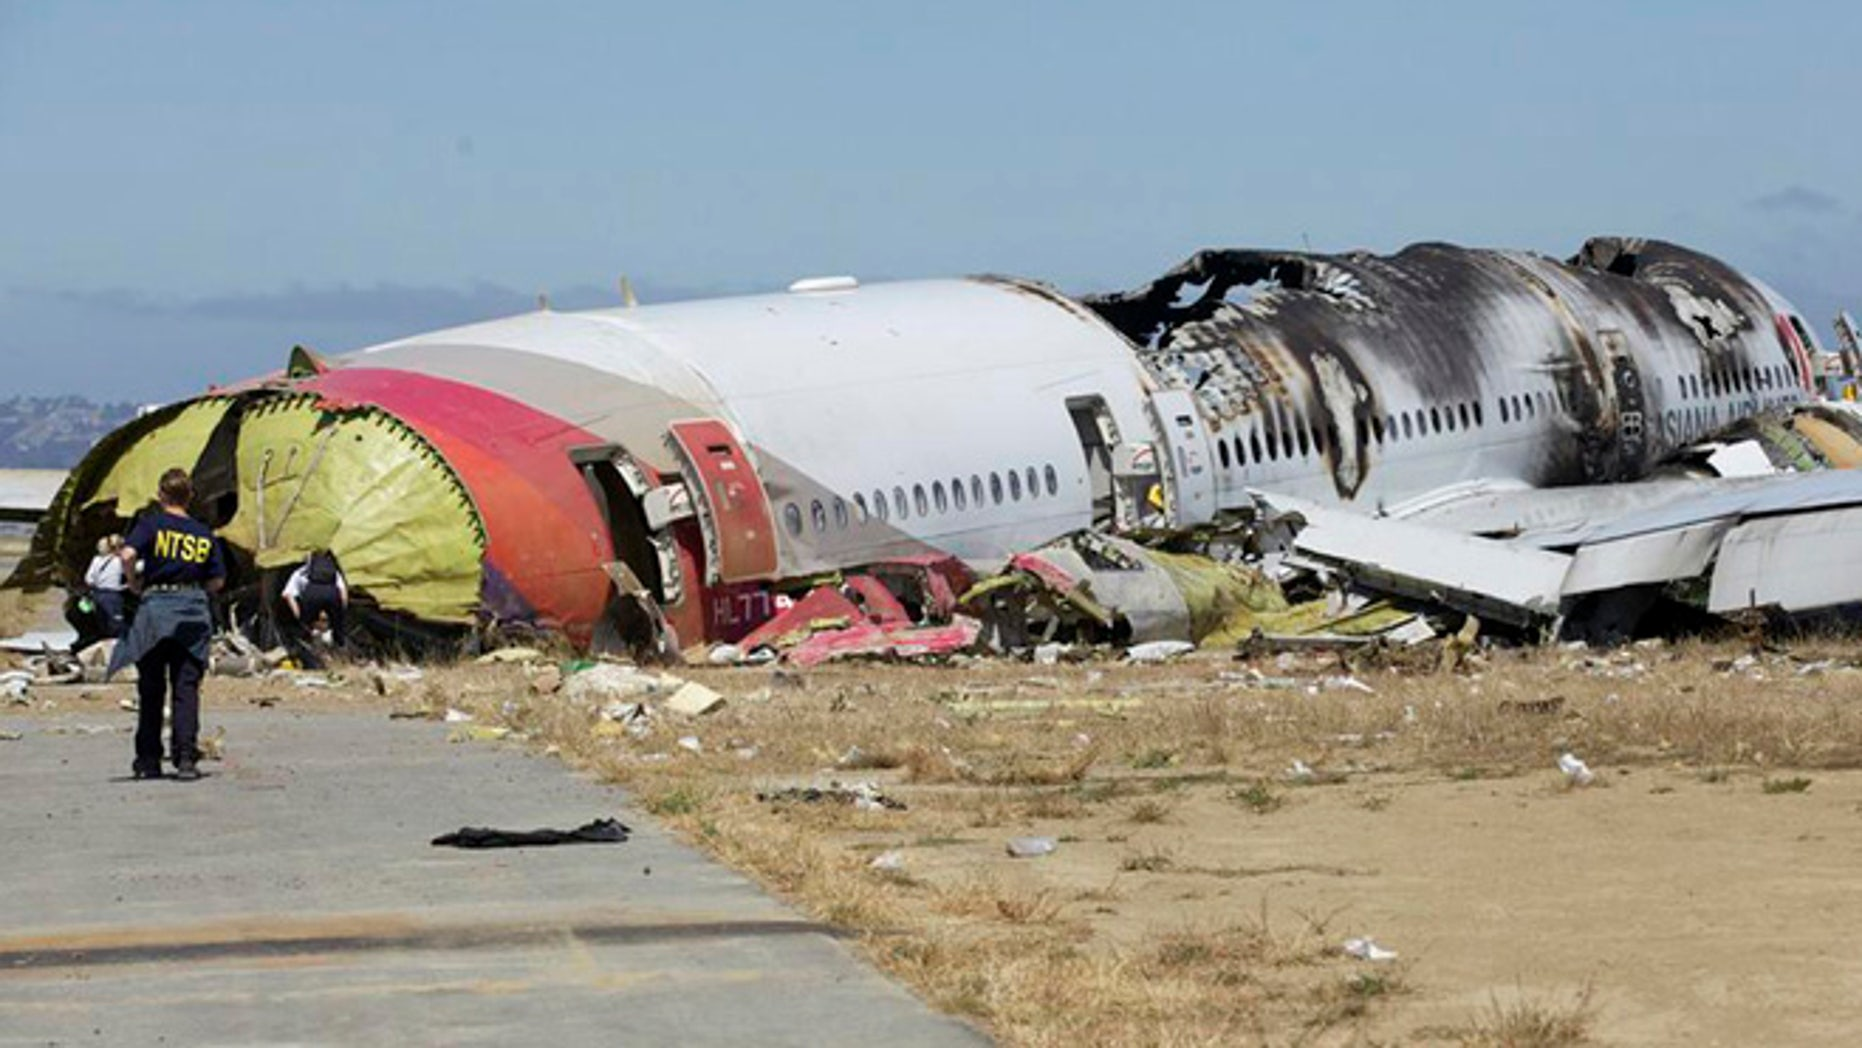 July 7, 2013: This U.S. National Transportation Safety Board (NTSB) photo shows the wreckage of Asiana Airlines Flight 214 that crashed at San Francisco International Airport in San Francisco, California.